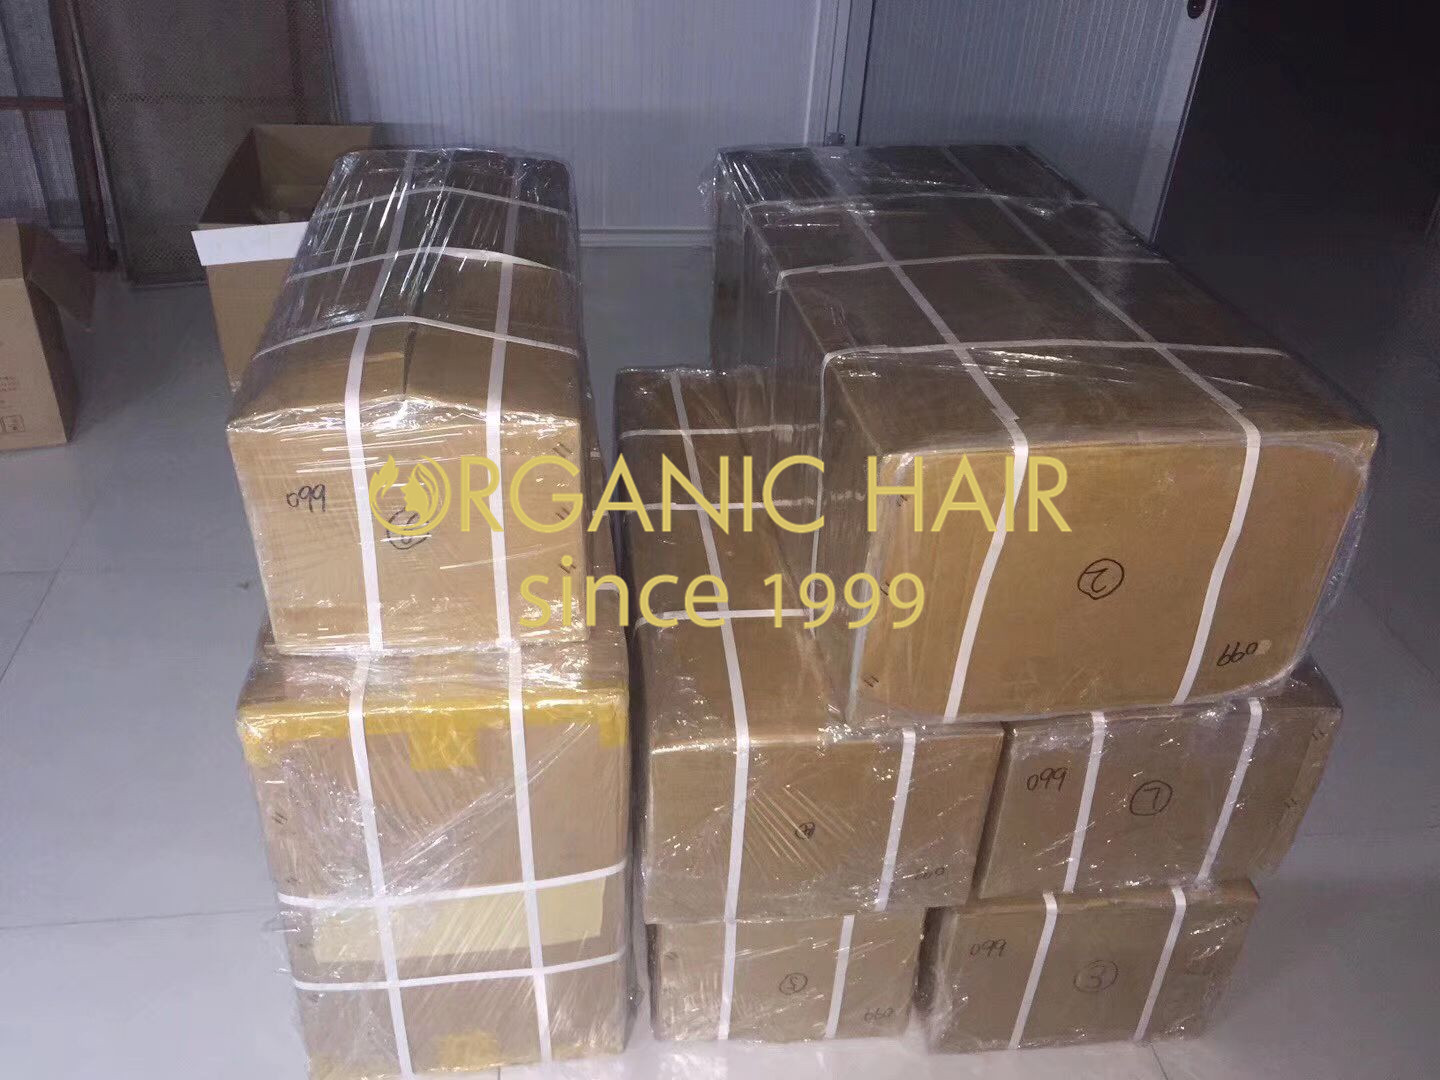 The SAS/STAT system provides customers fast service by preparing hair extension products large in stock h2